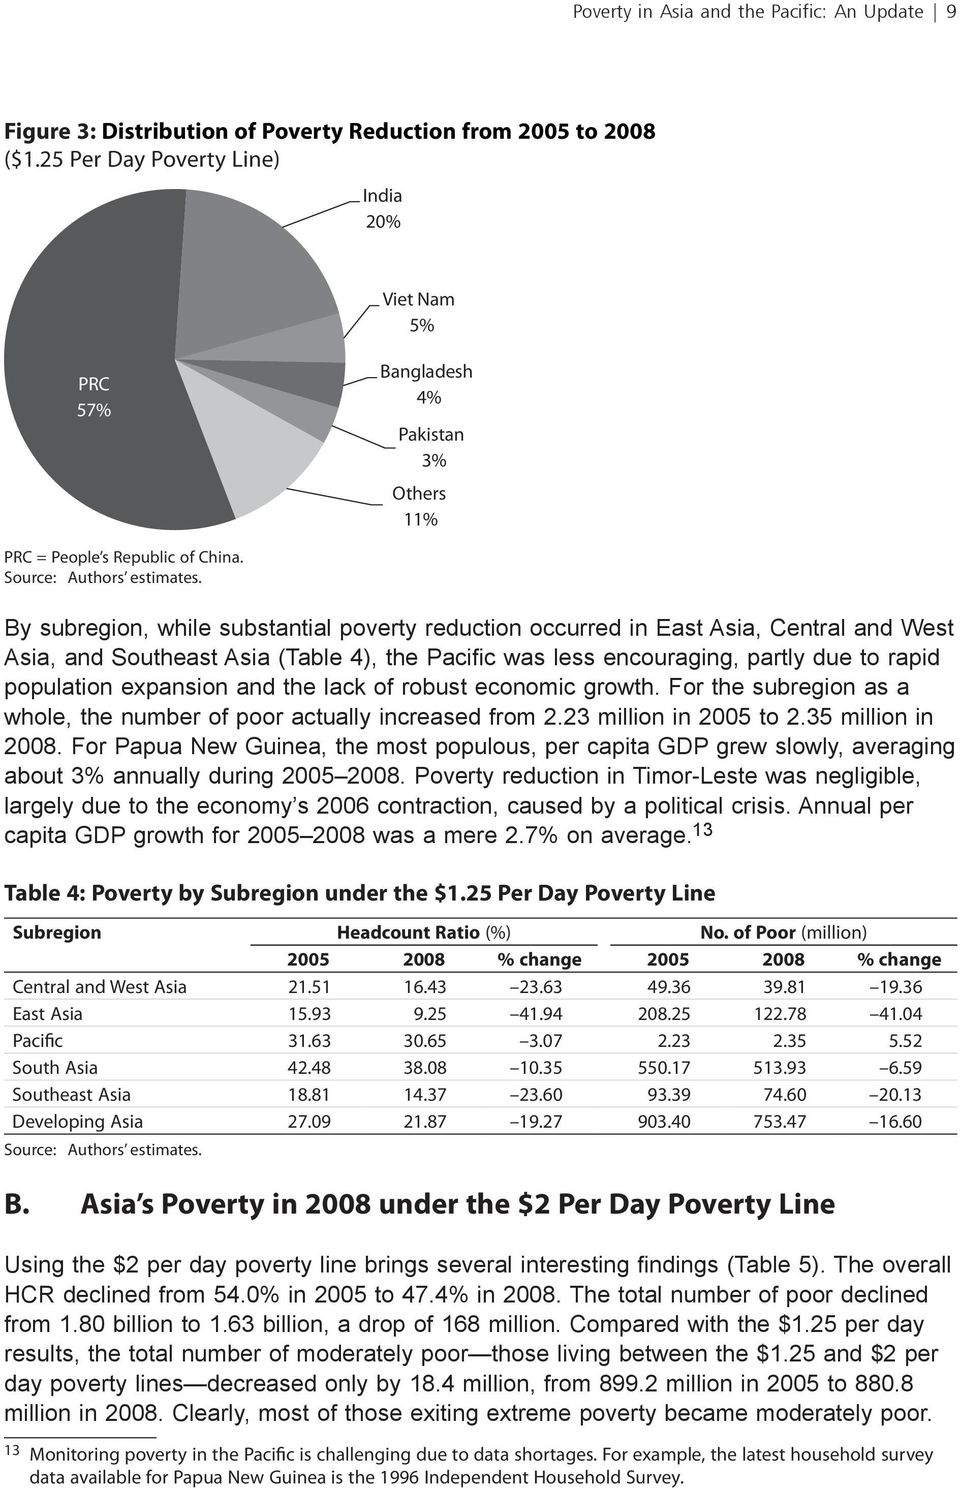 By subregion, while substantial poverty reduction occurred in East Asia, Central and West Asia, and Southeast Asia (Table 4), the Pacific was less encouraging, partly due to rapid population